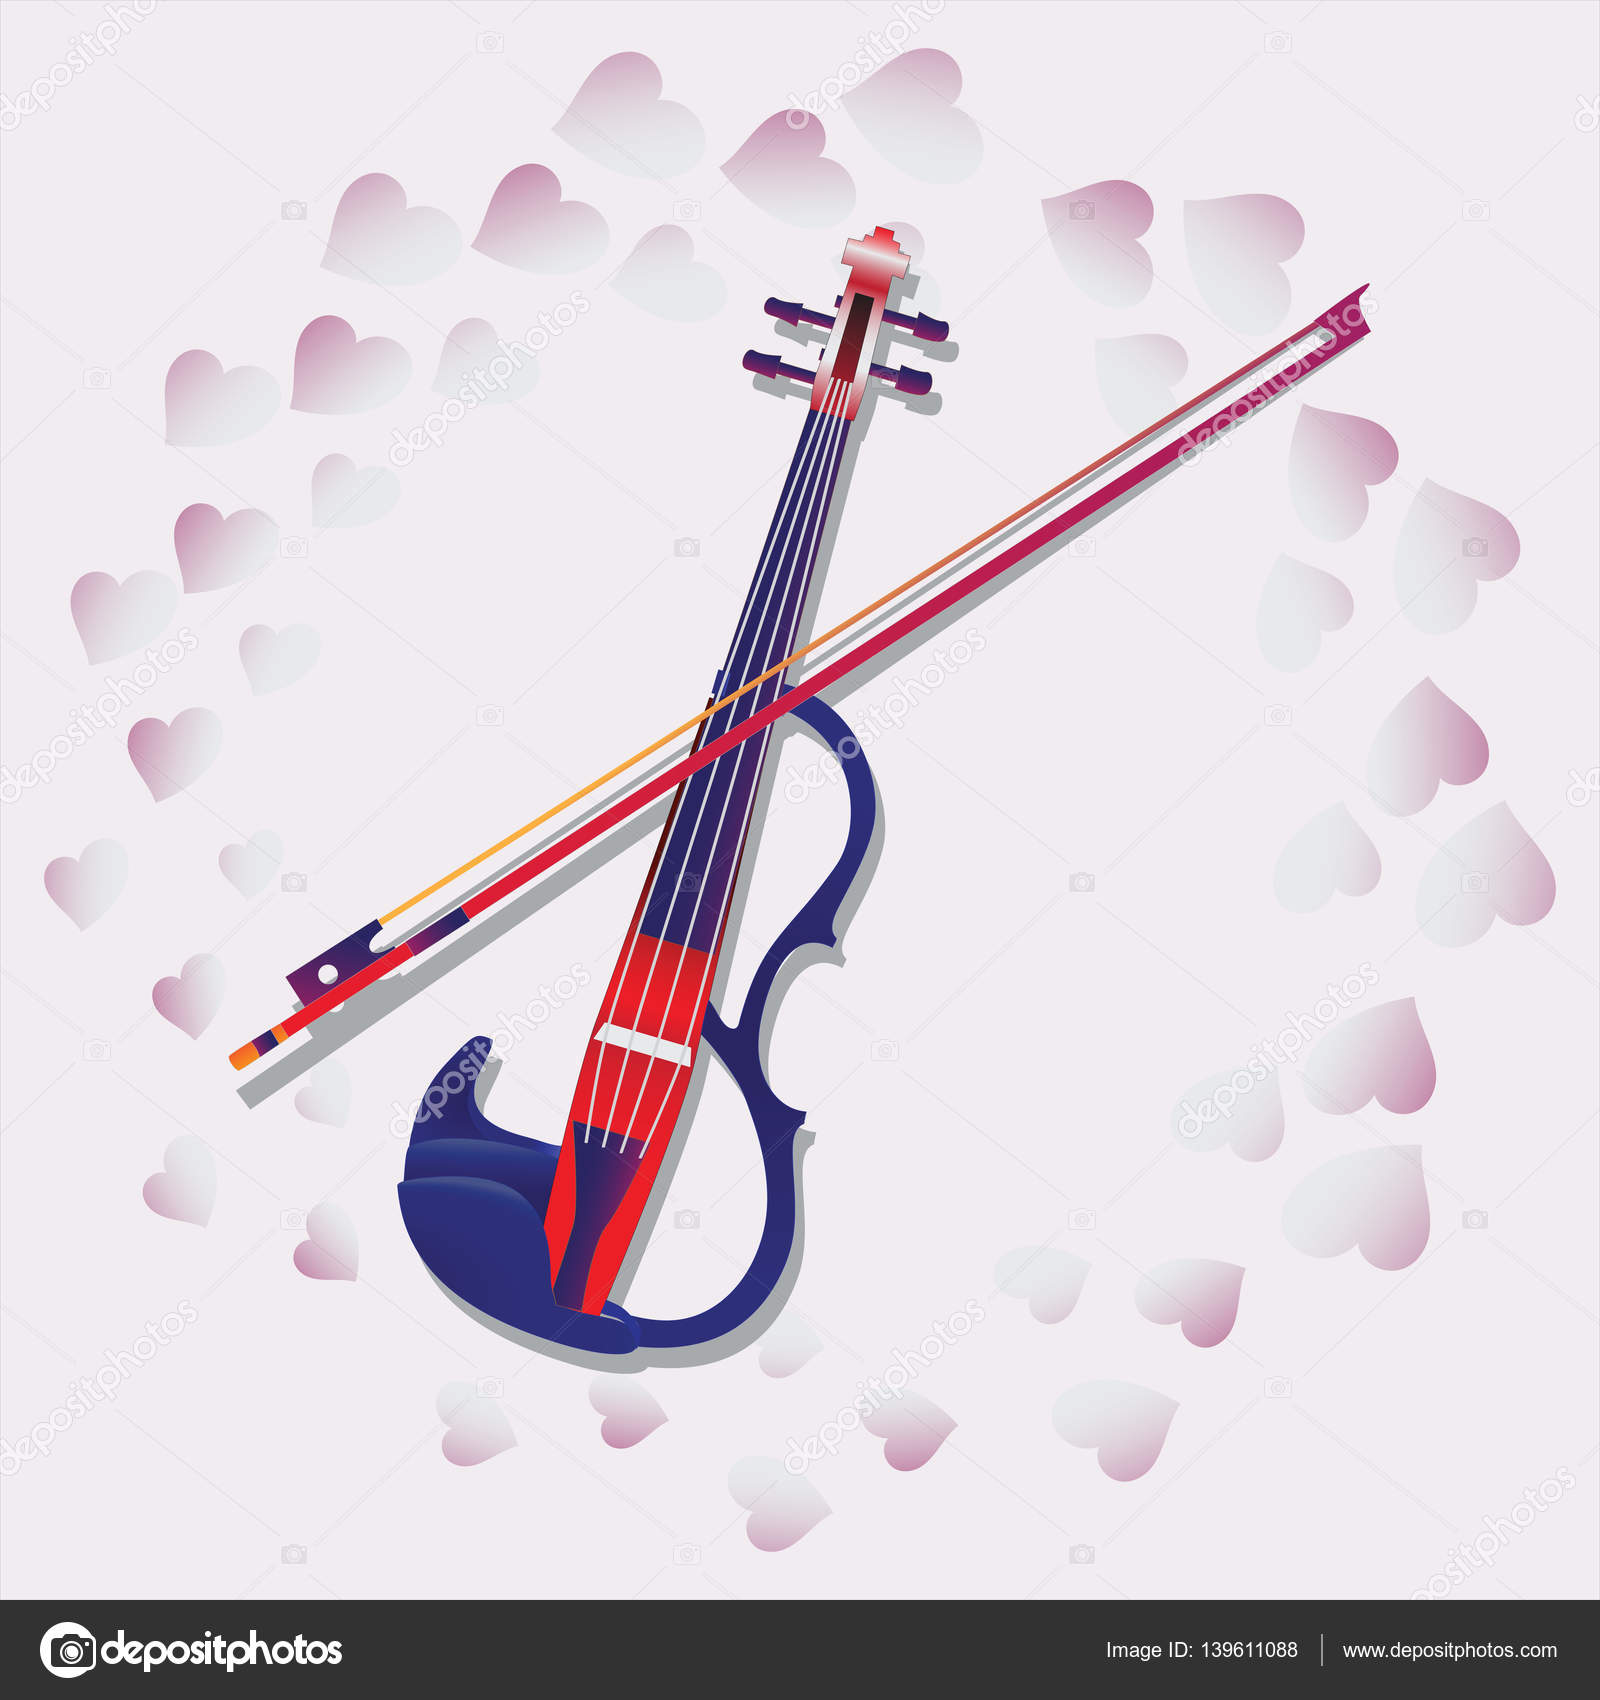 My love violin for ticketing souvenir program anons in composition with pink hearts for greetings on valentines day engagement wedding vector by velishchuknatali kristyandbryce Image collections